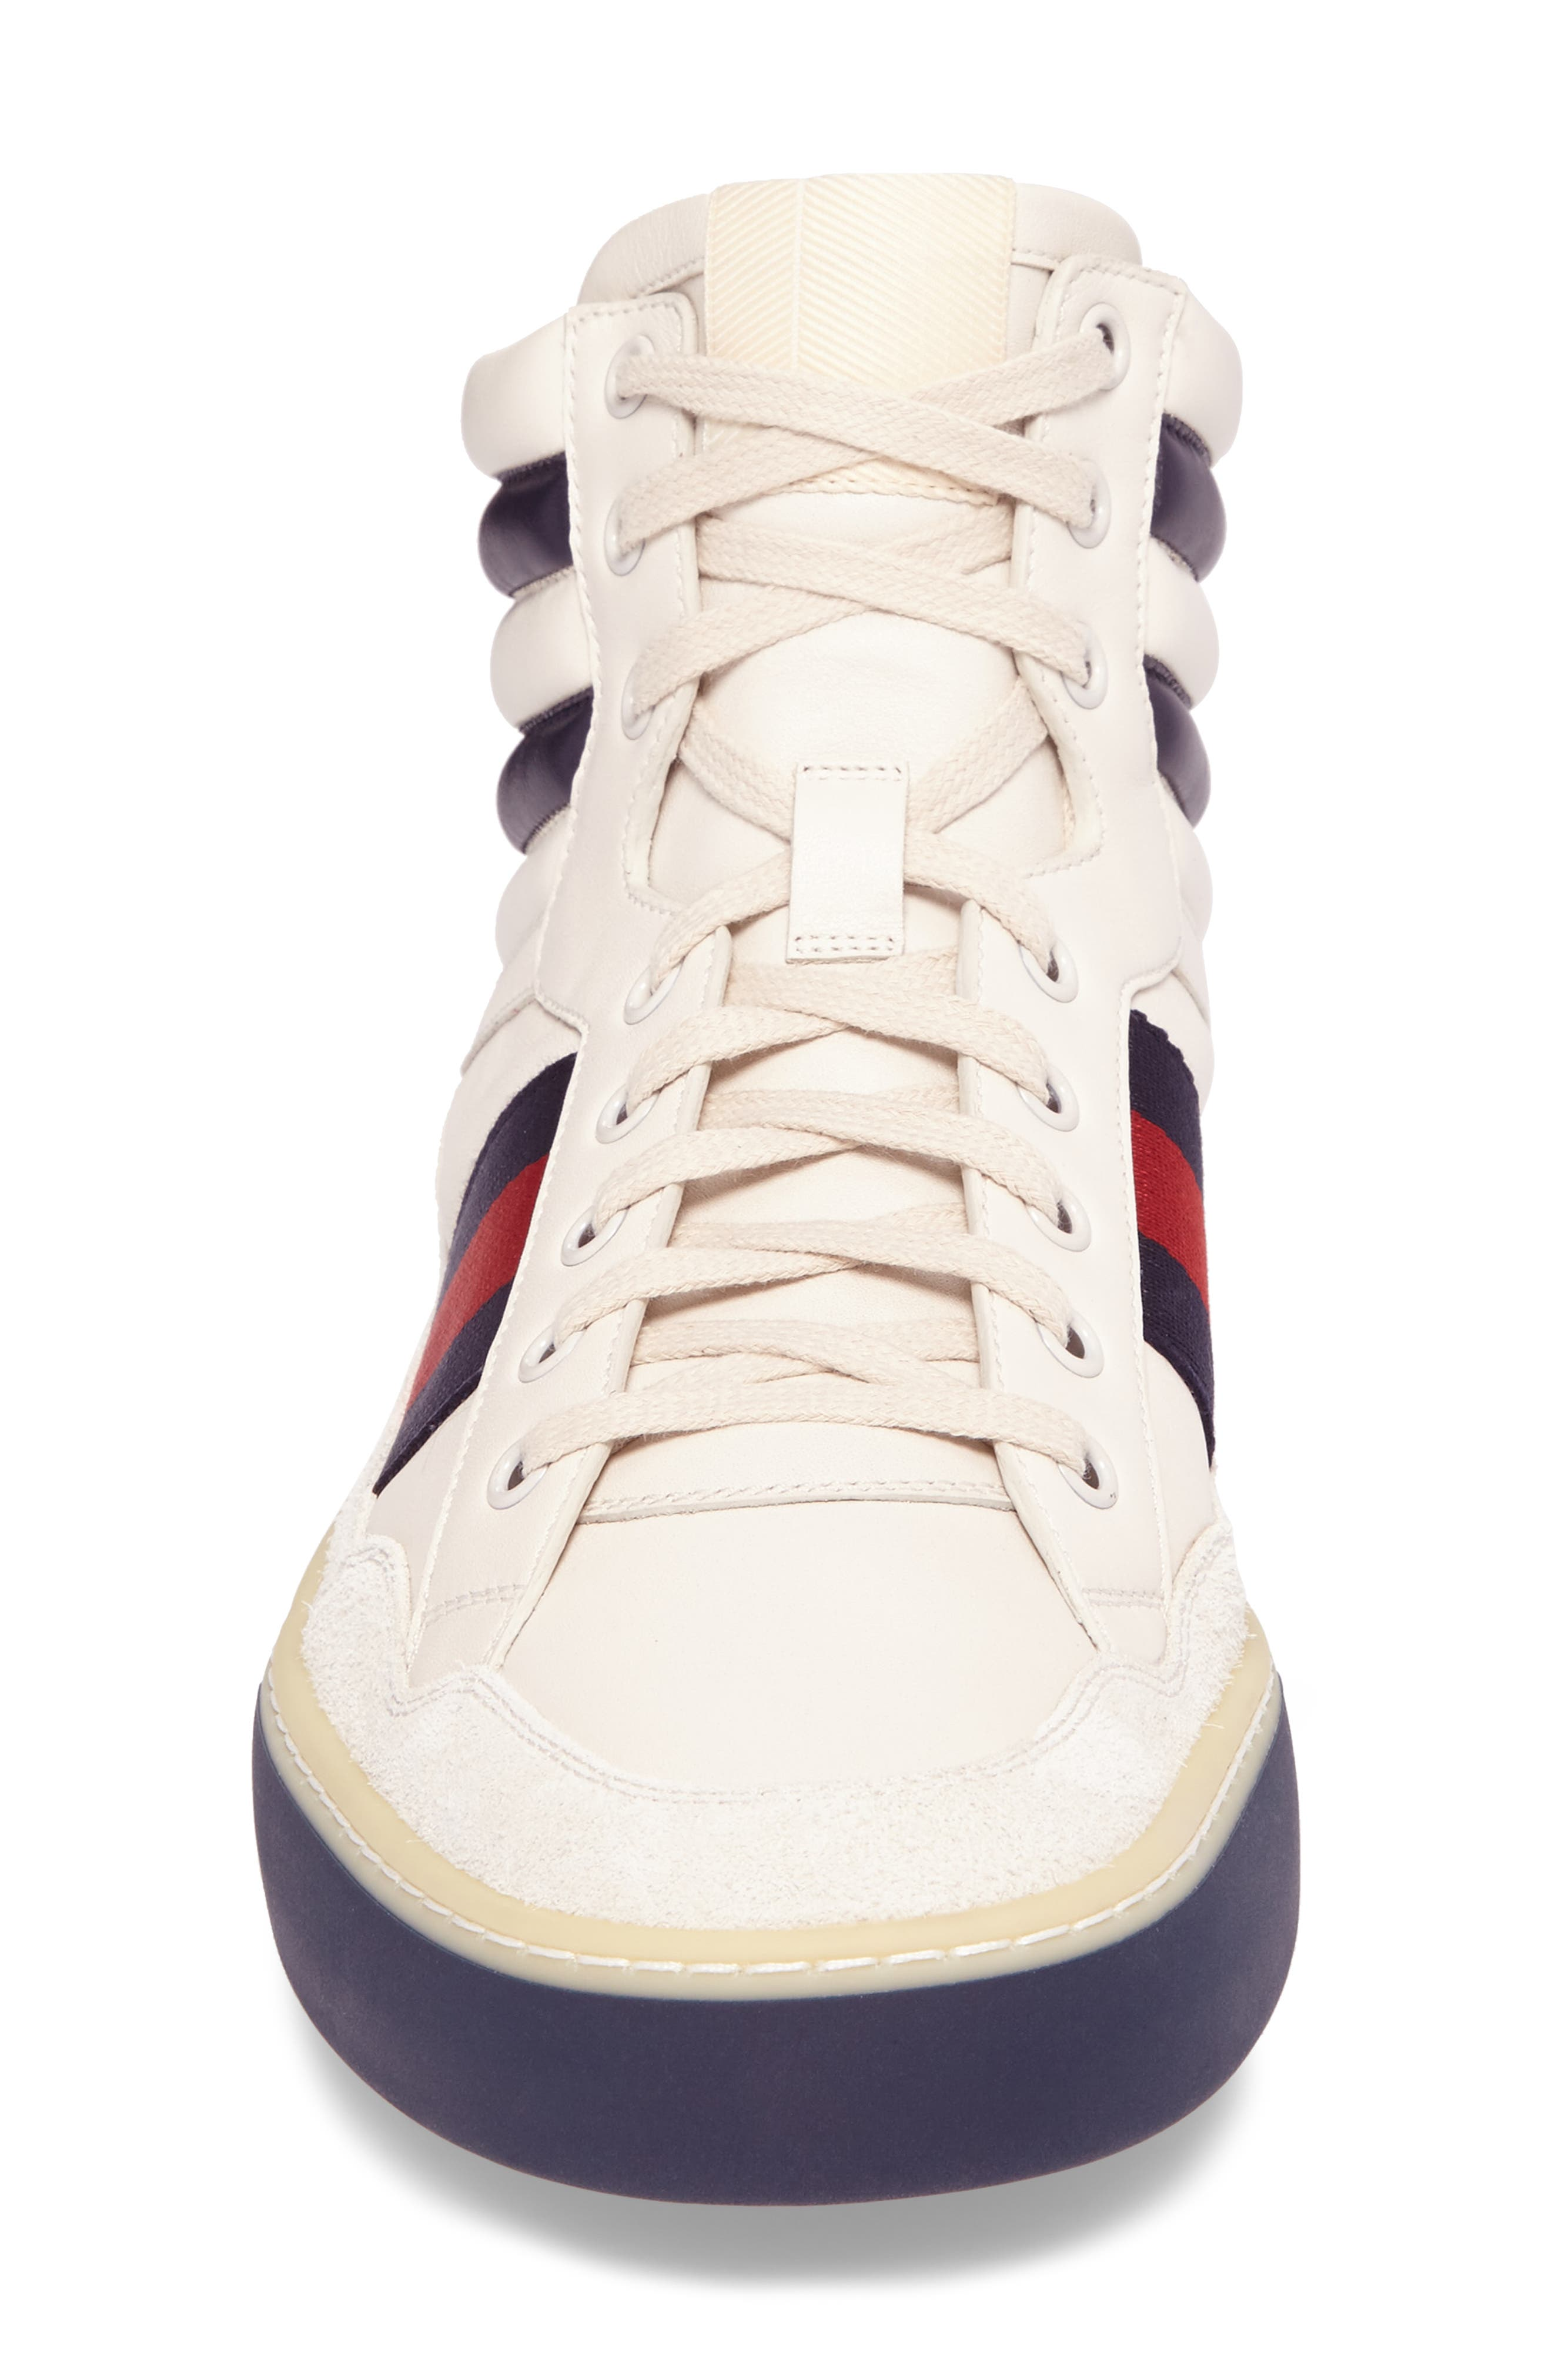 Leather High Top Sneaker,                             Alternate thumbnail 4, color,                             WHITE LEATHER/ SUEDE